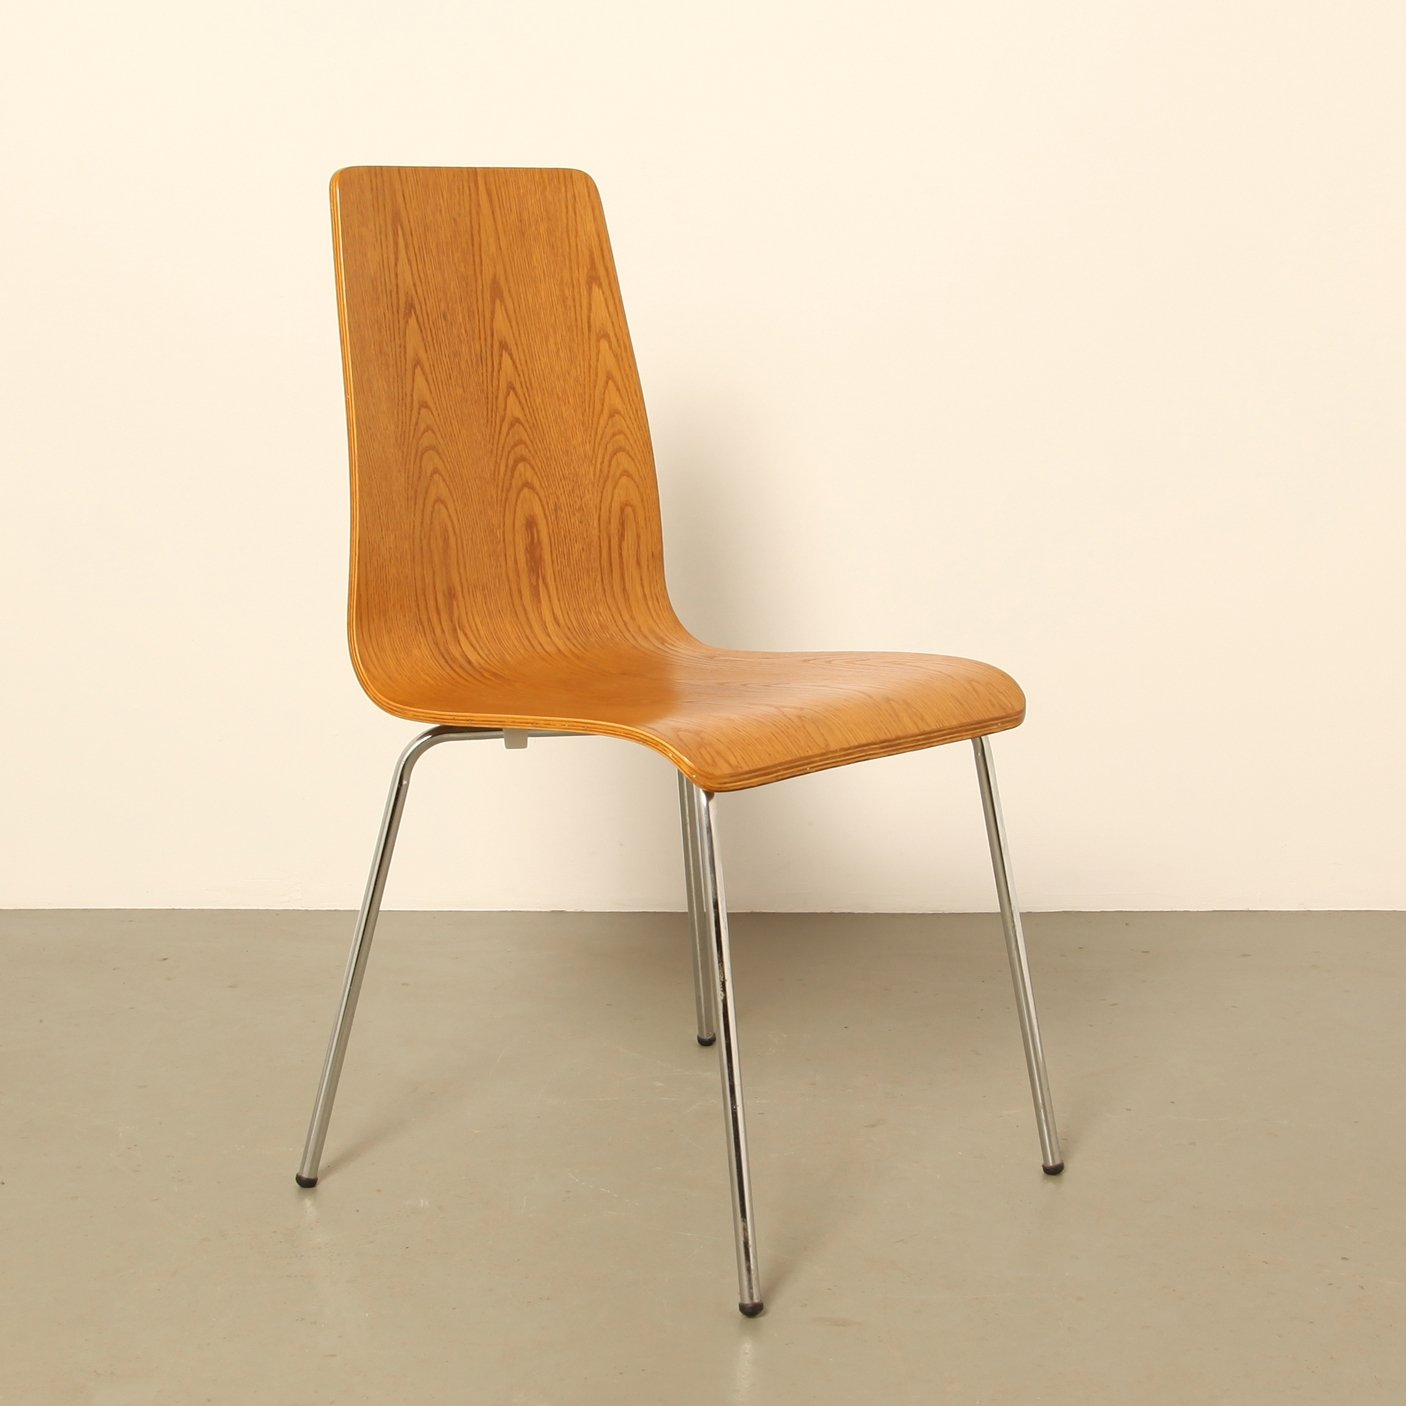 4 x Bent plywood chair by Philippe Starck  68177